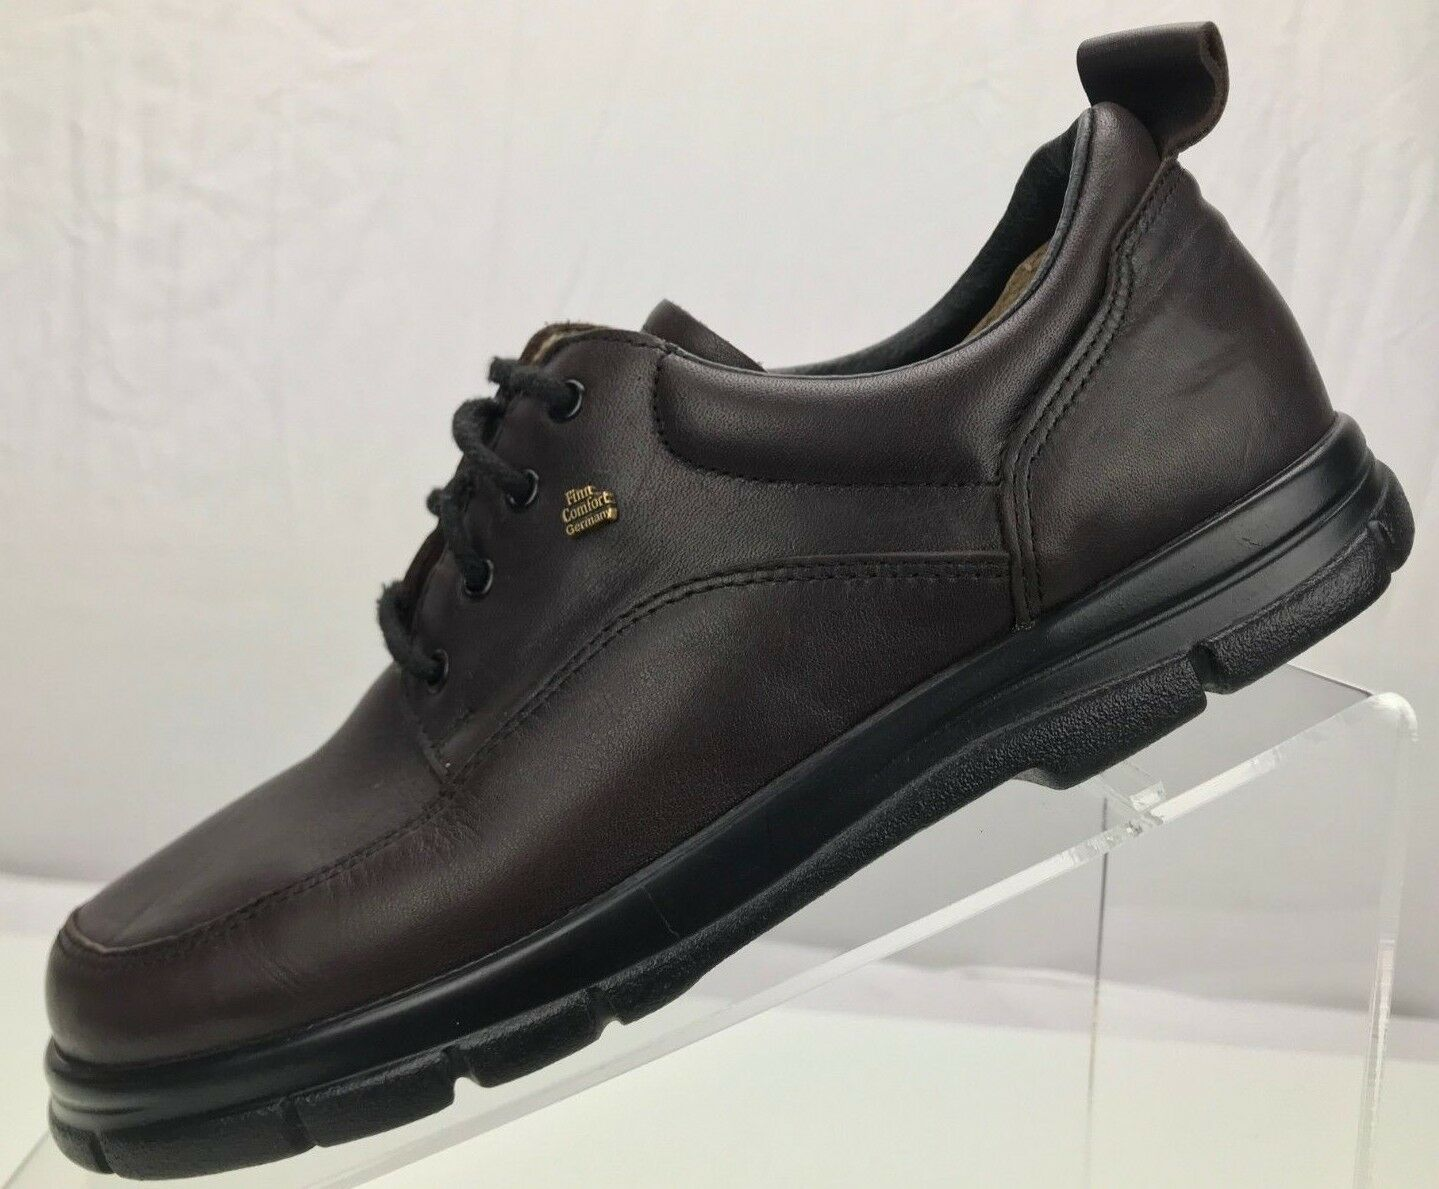 Finn Comfort Apron Toe Casual Oxford Oxford Oxford Comfort Brown shoes Germany Womens 36 5.5 6 0cc038